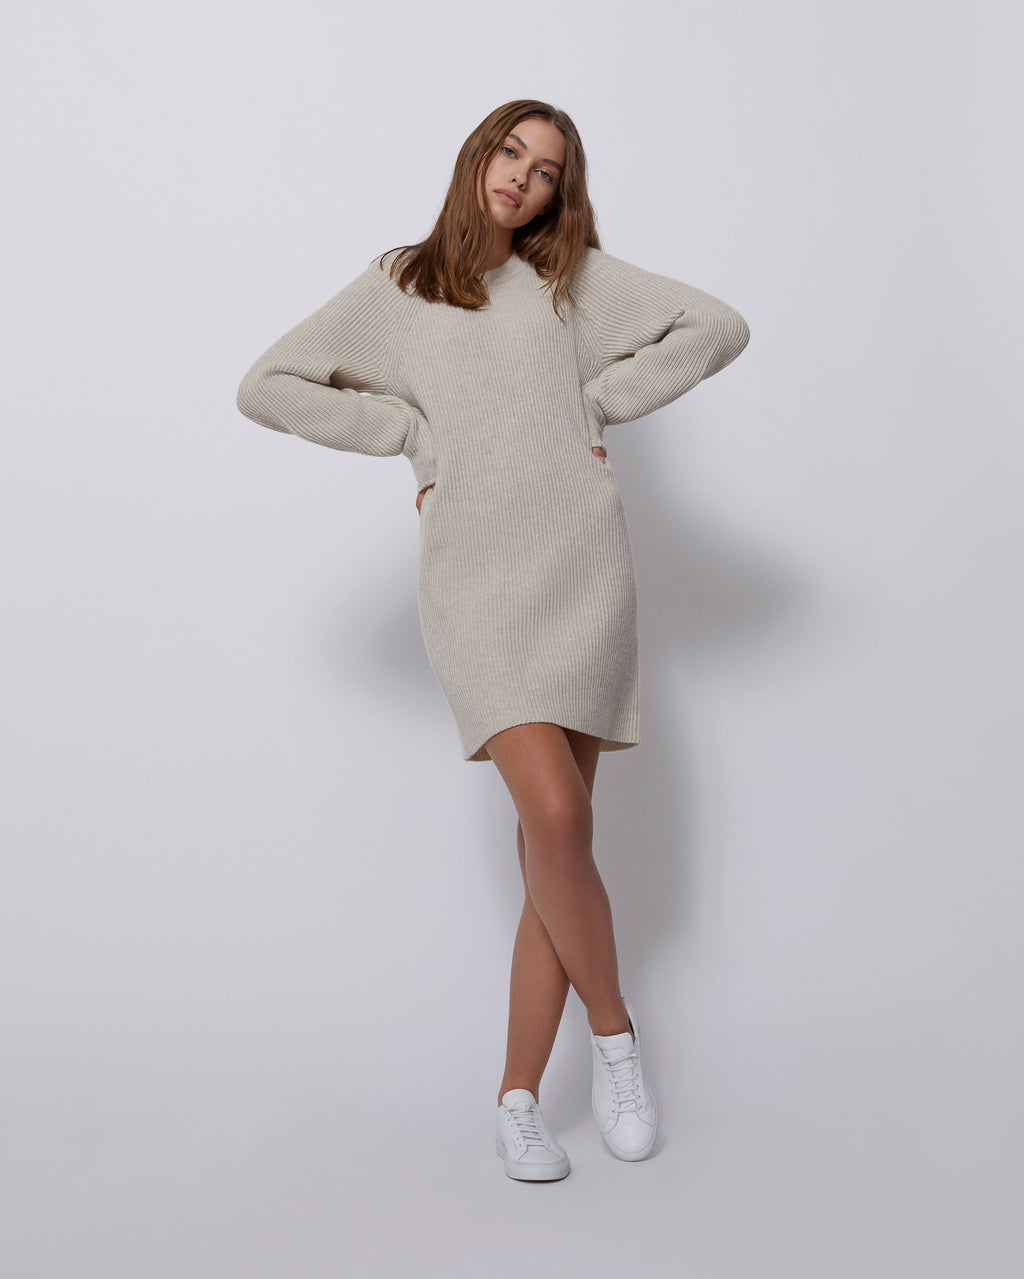 The Micah Dress in Studio Beige